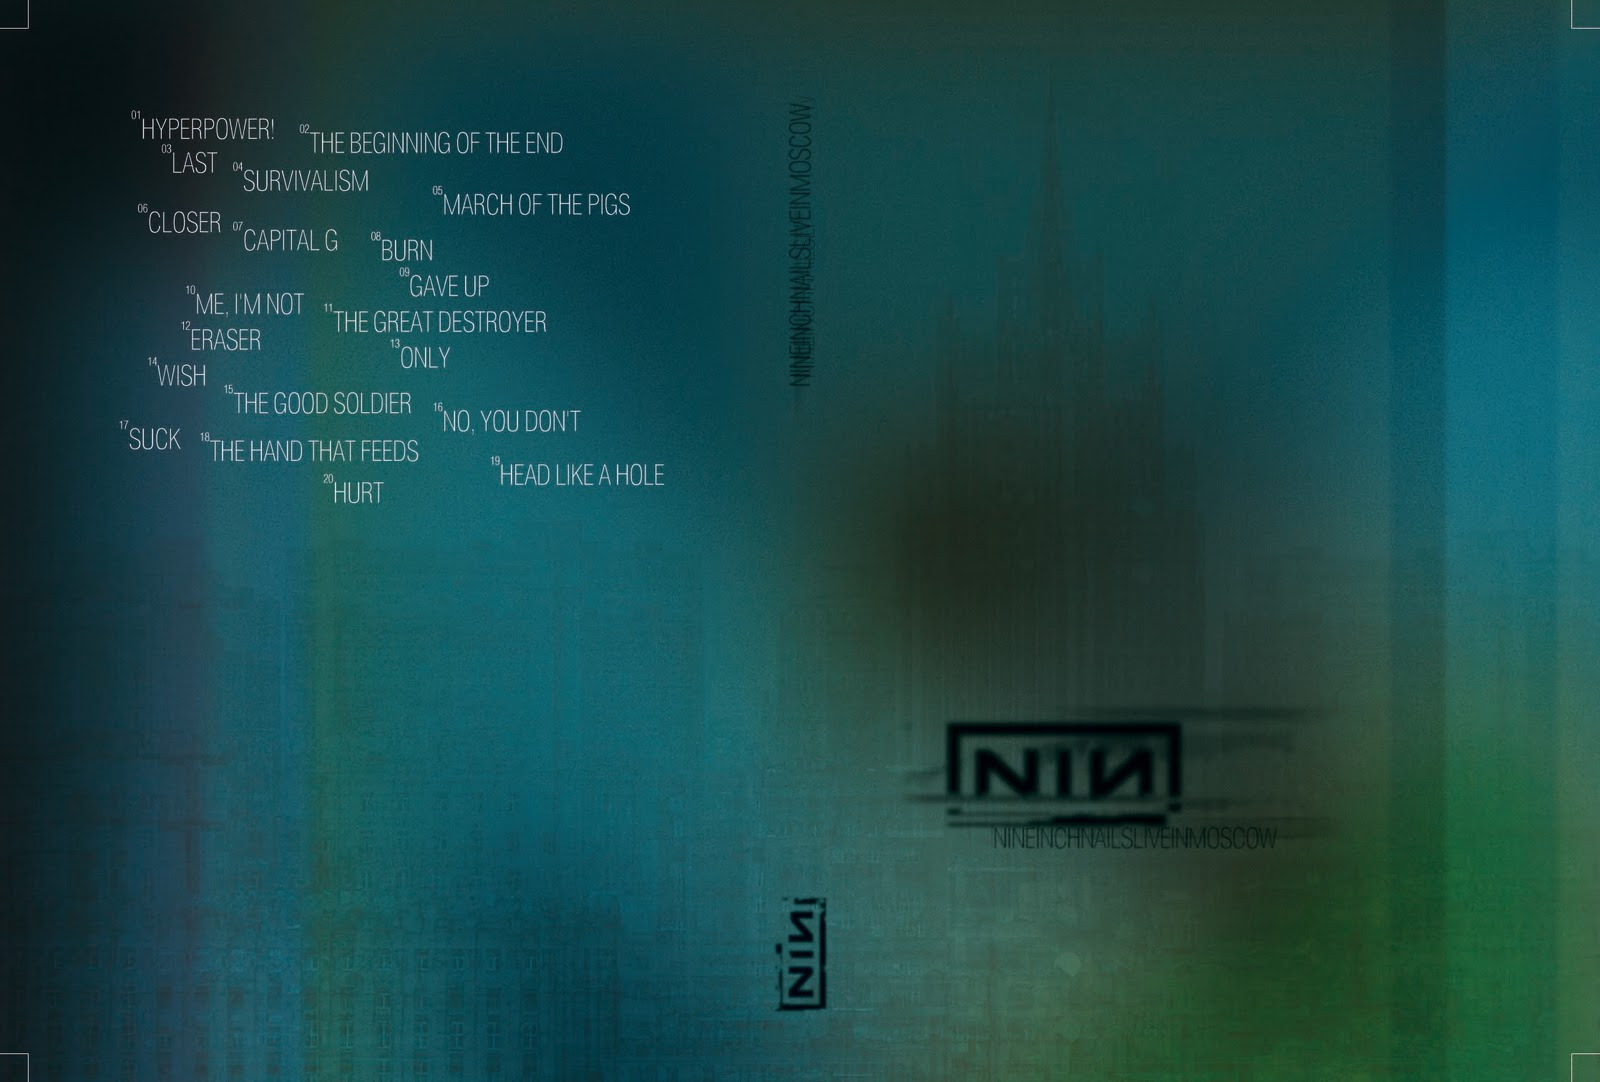 DARK CIRCLE ROOM: Nine Inch Nails - Moscow, Russia - 01.08.2007 (DL DVD)